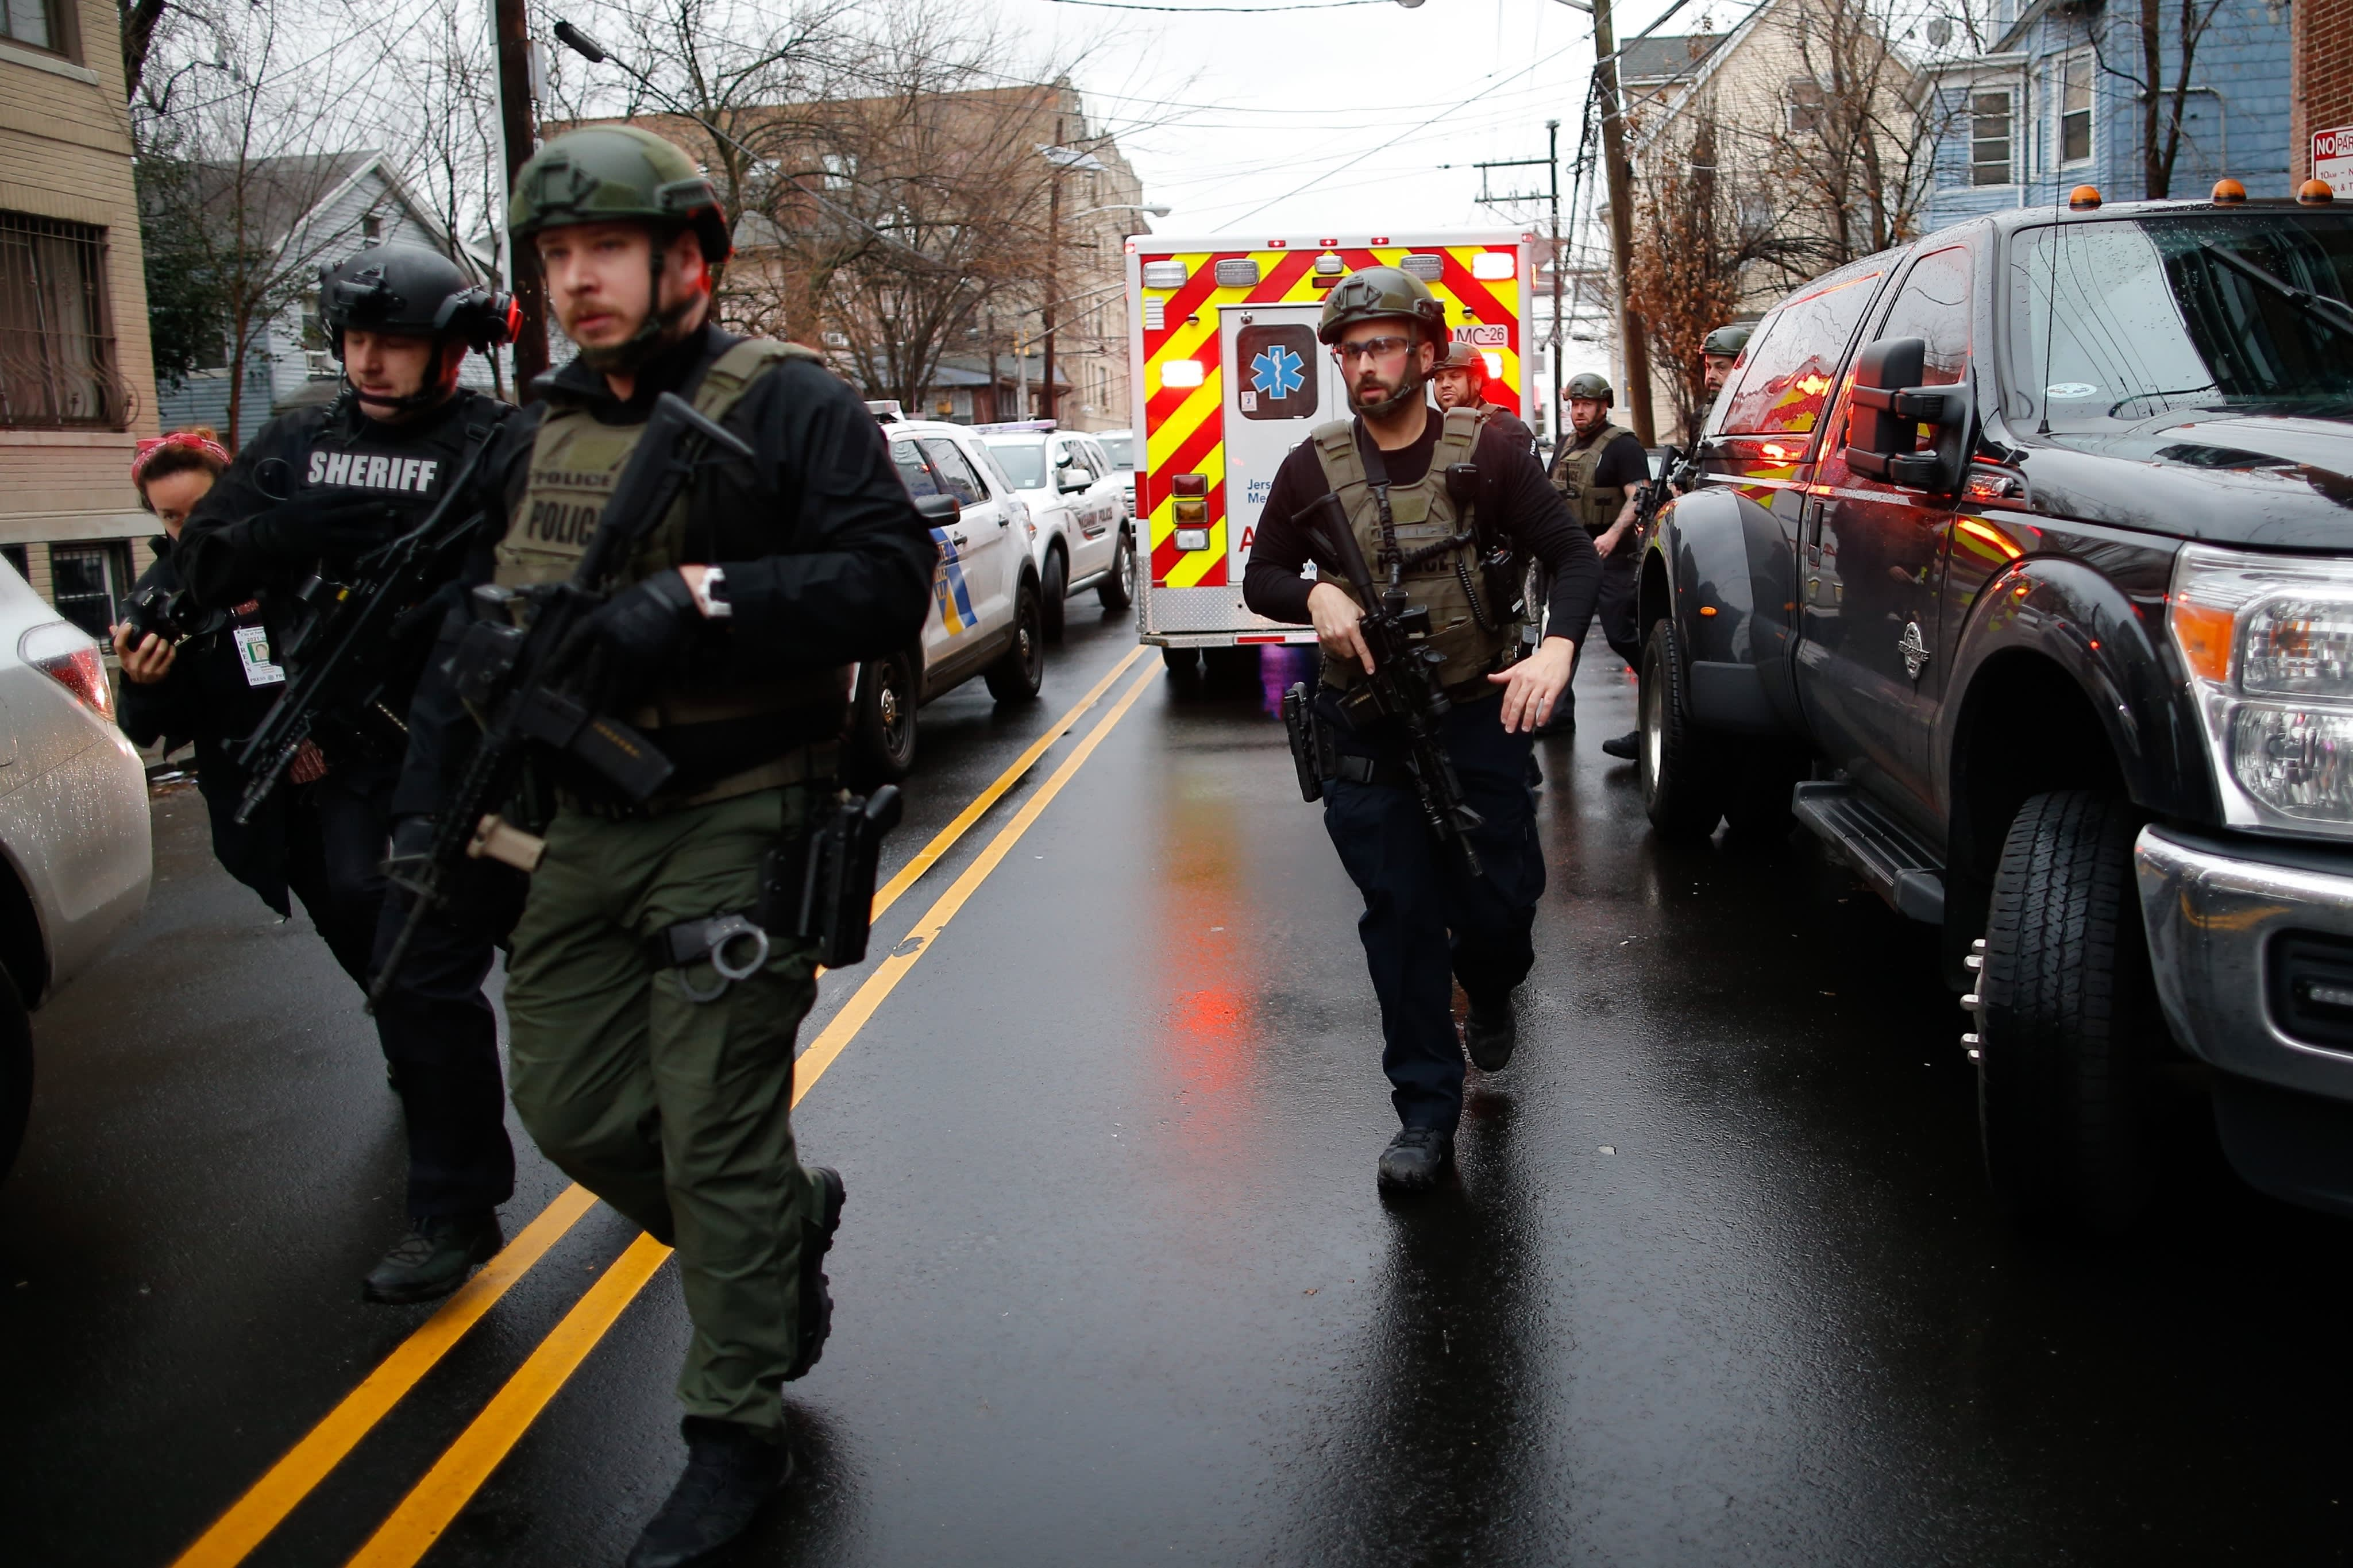 Multiple killed in New Jersey shooting, including an officer